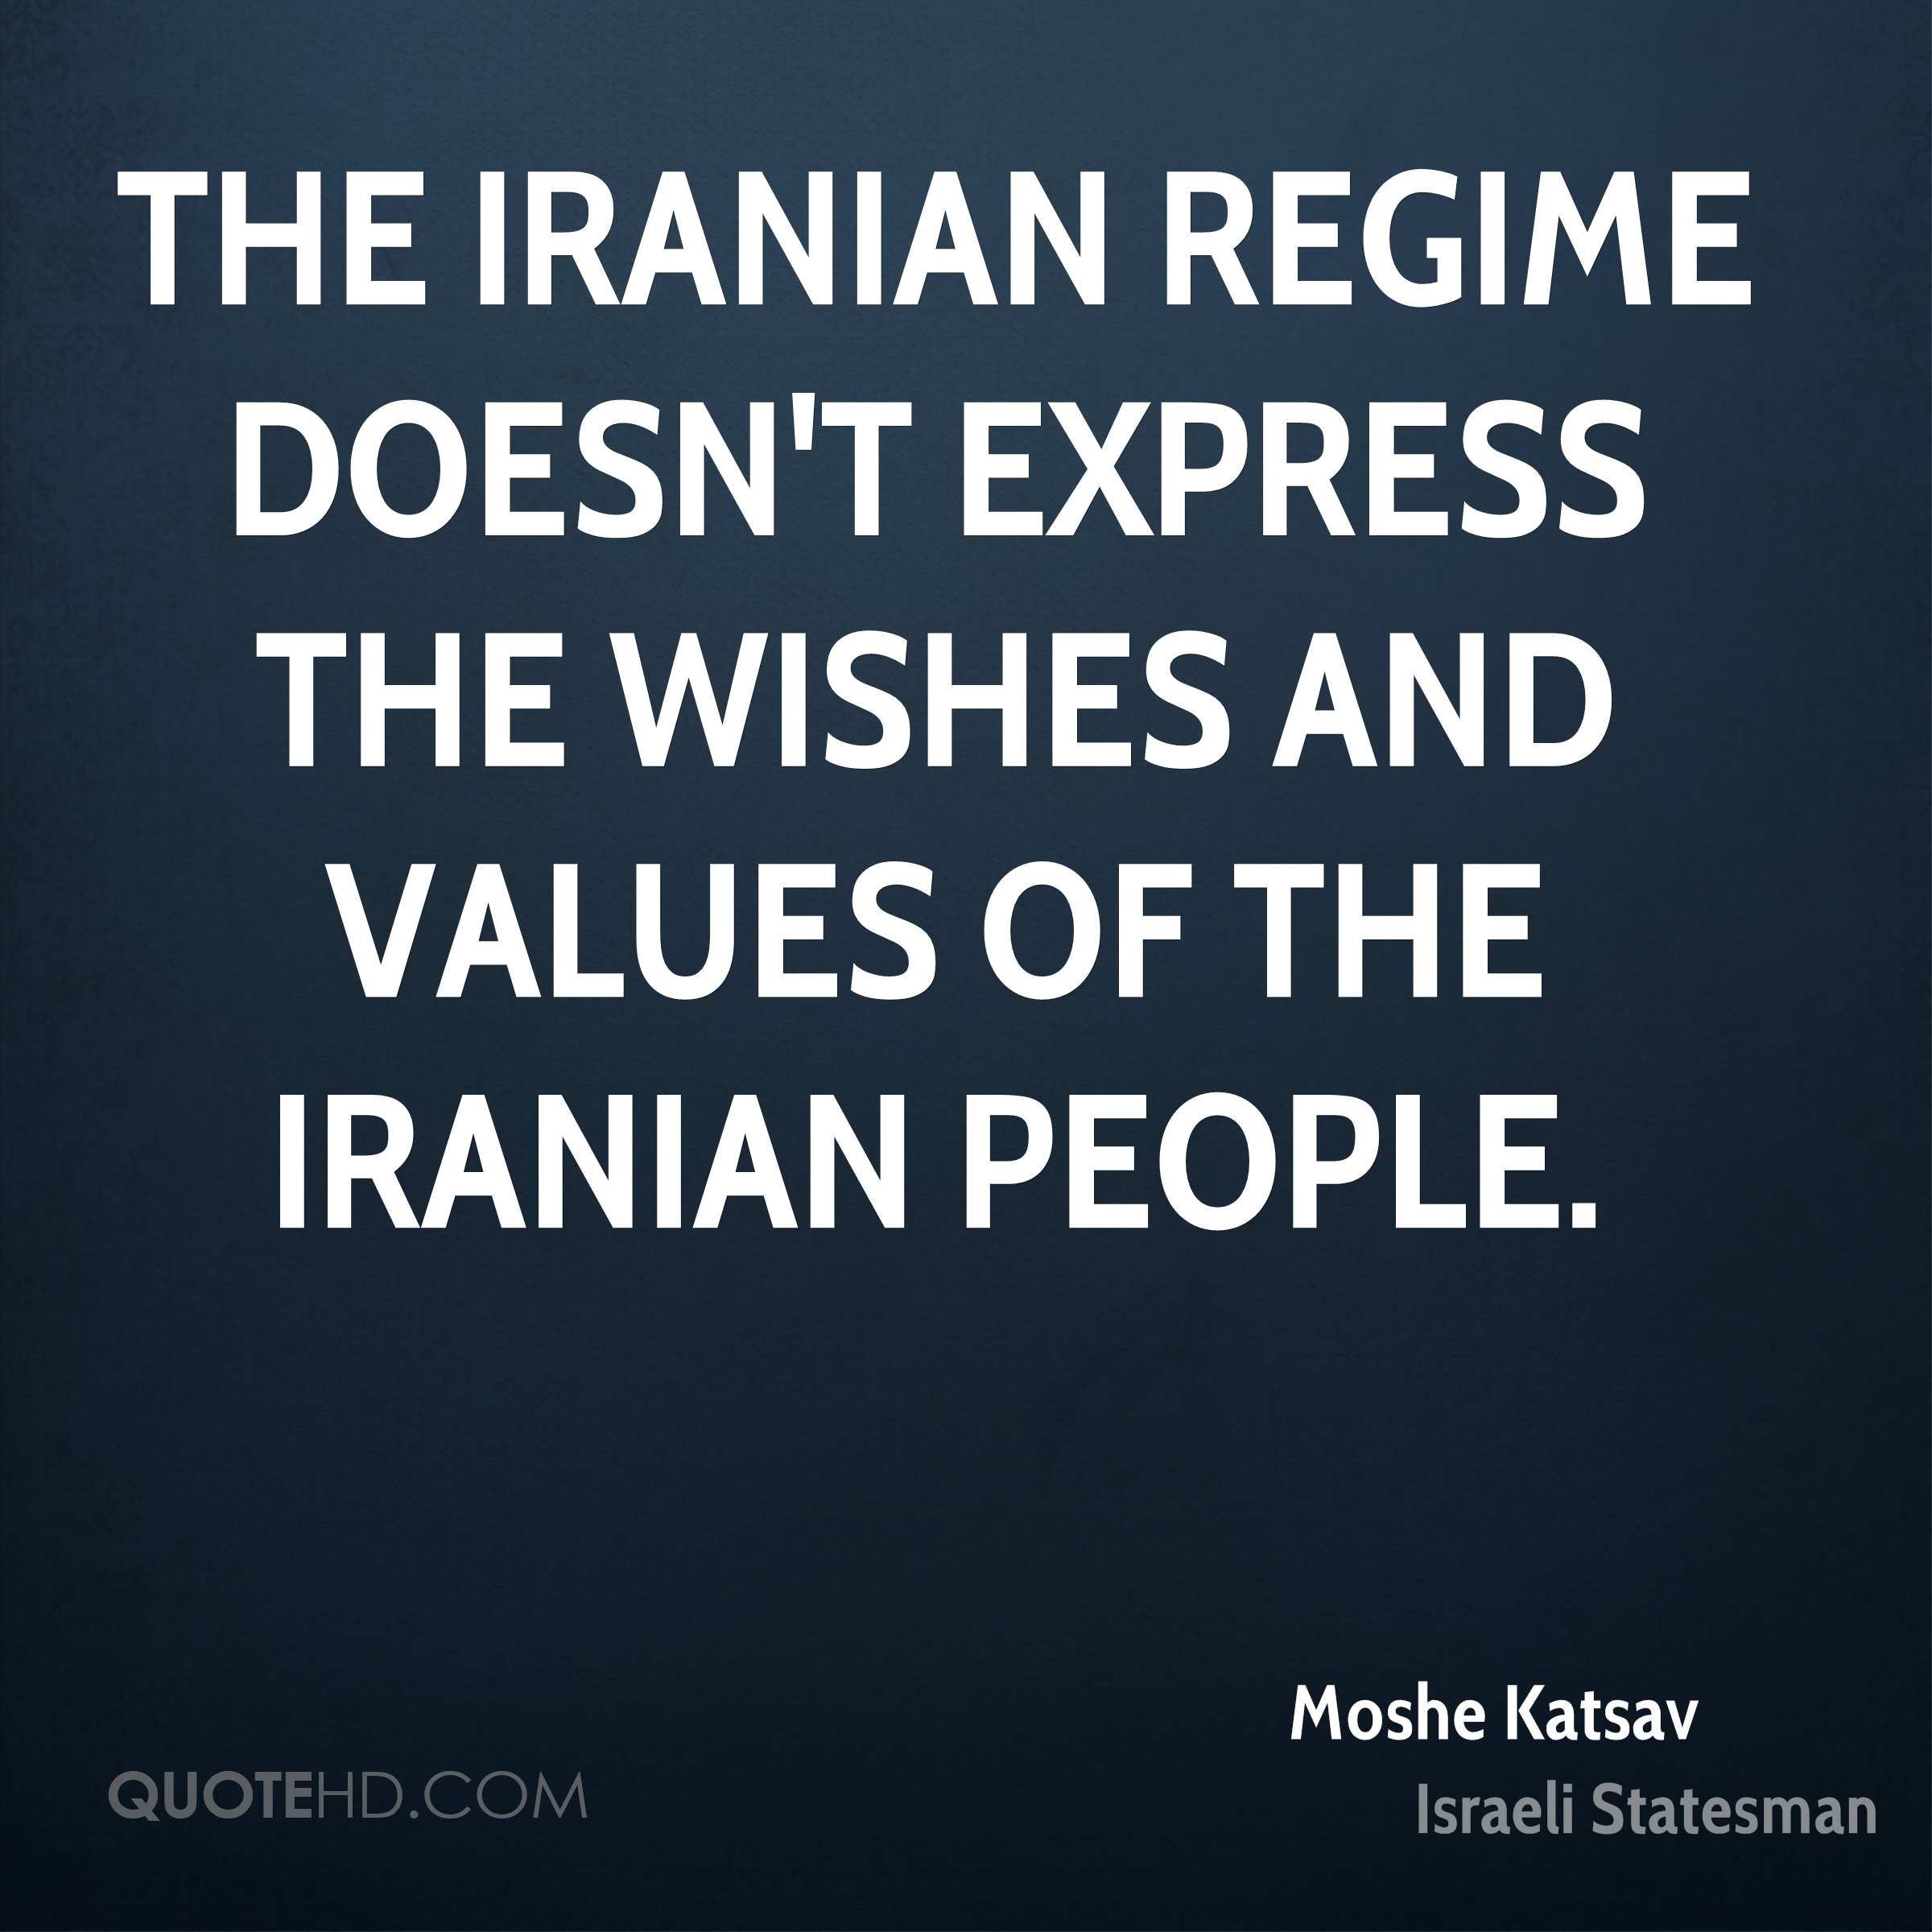 The Iranian regime doesn't express the wishes and values of the Iranian people.